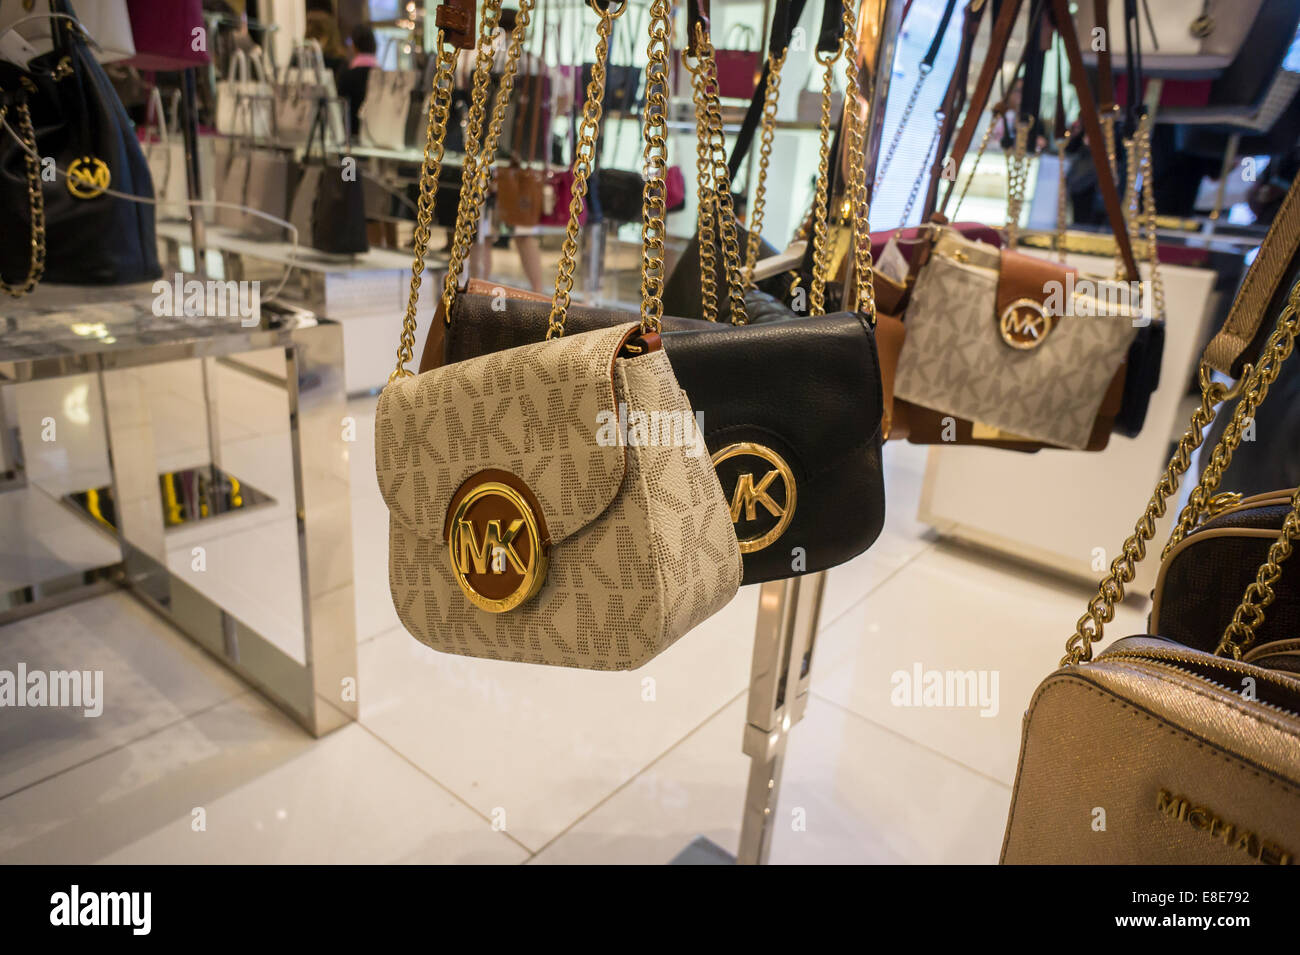 109f266220b5 The Michael Kors boutique within the Macy s Herald Square department store in  New York - Stock